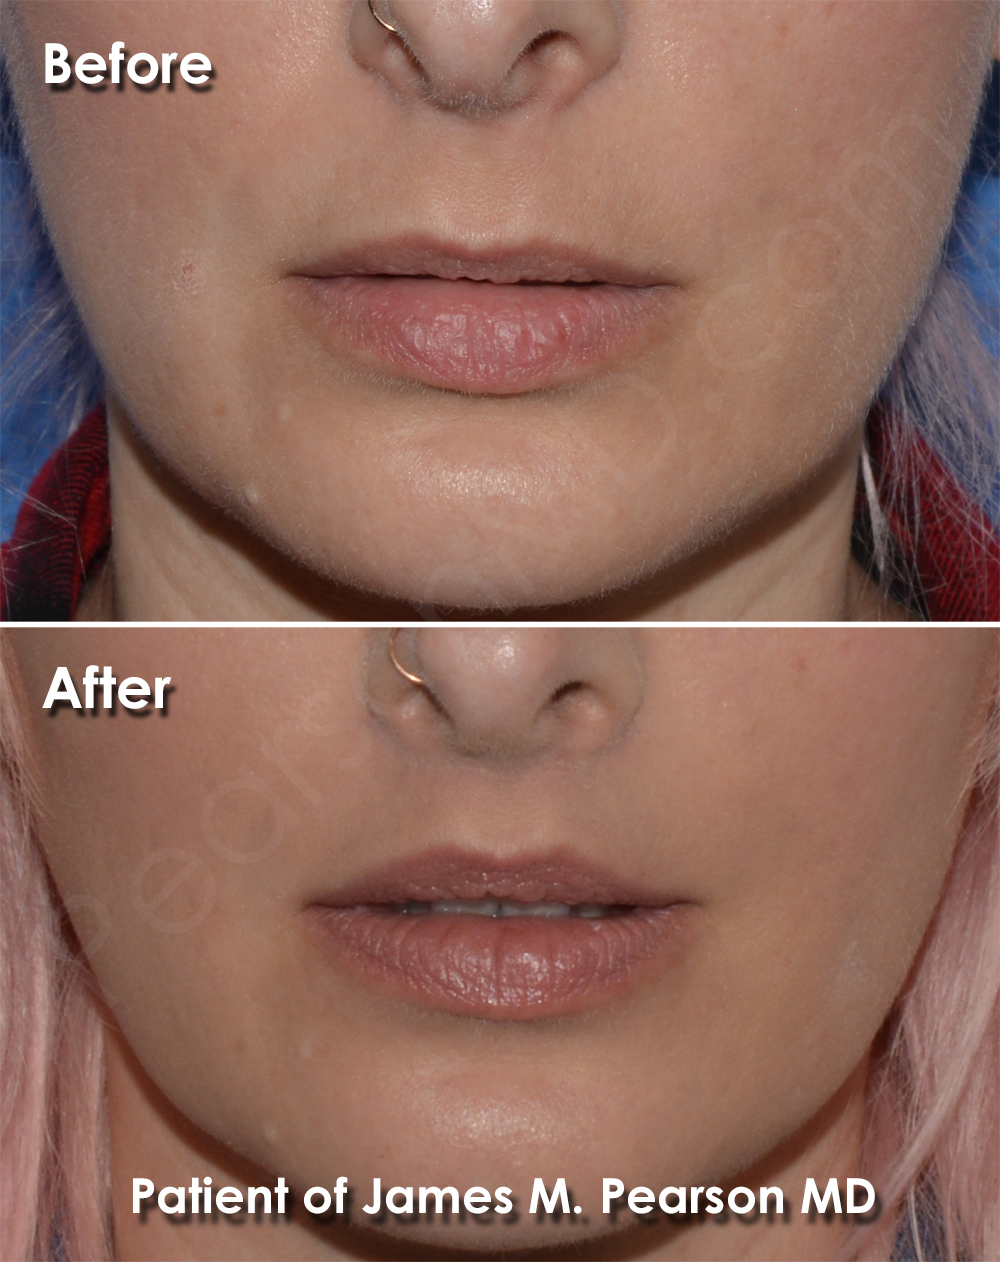 Lip Lift Photos - Before & After - Dr  James Pearson Facial